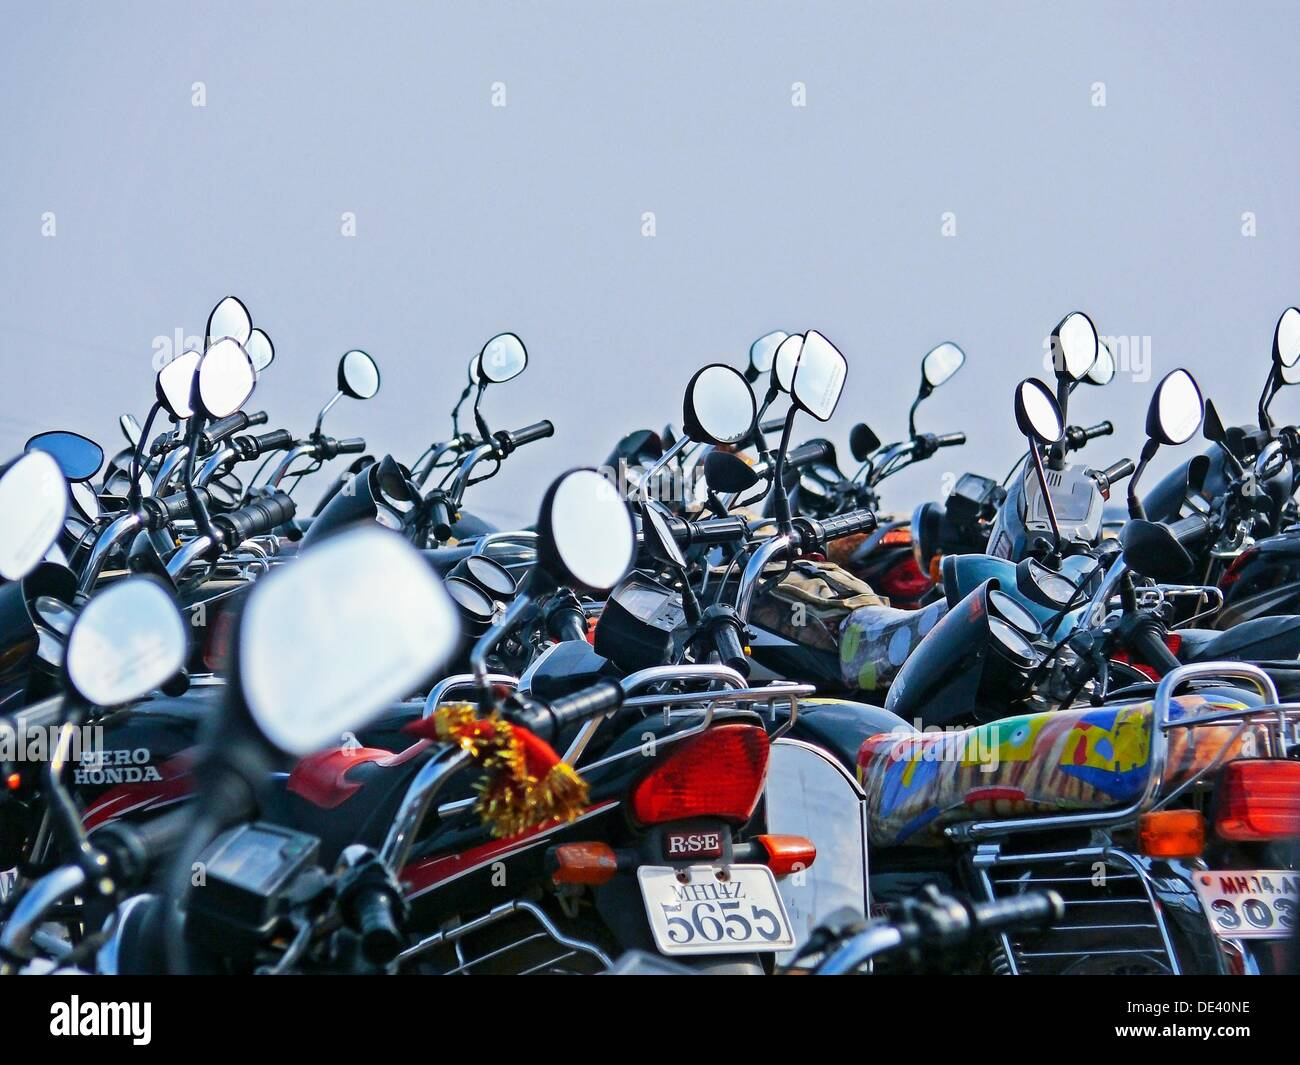 Rear view mirror, reflectors of motorcycles, bikes  India - Stock Image